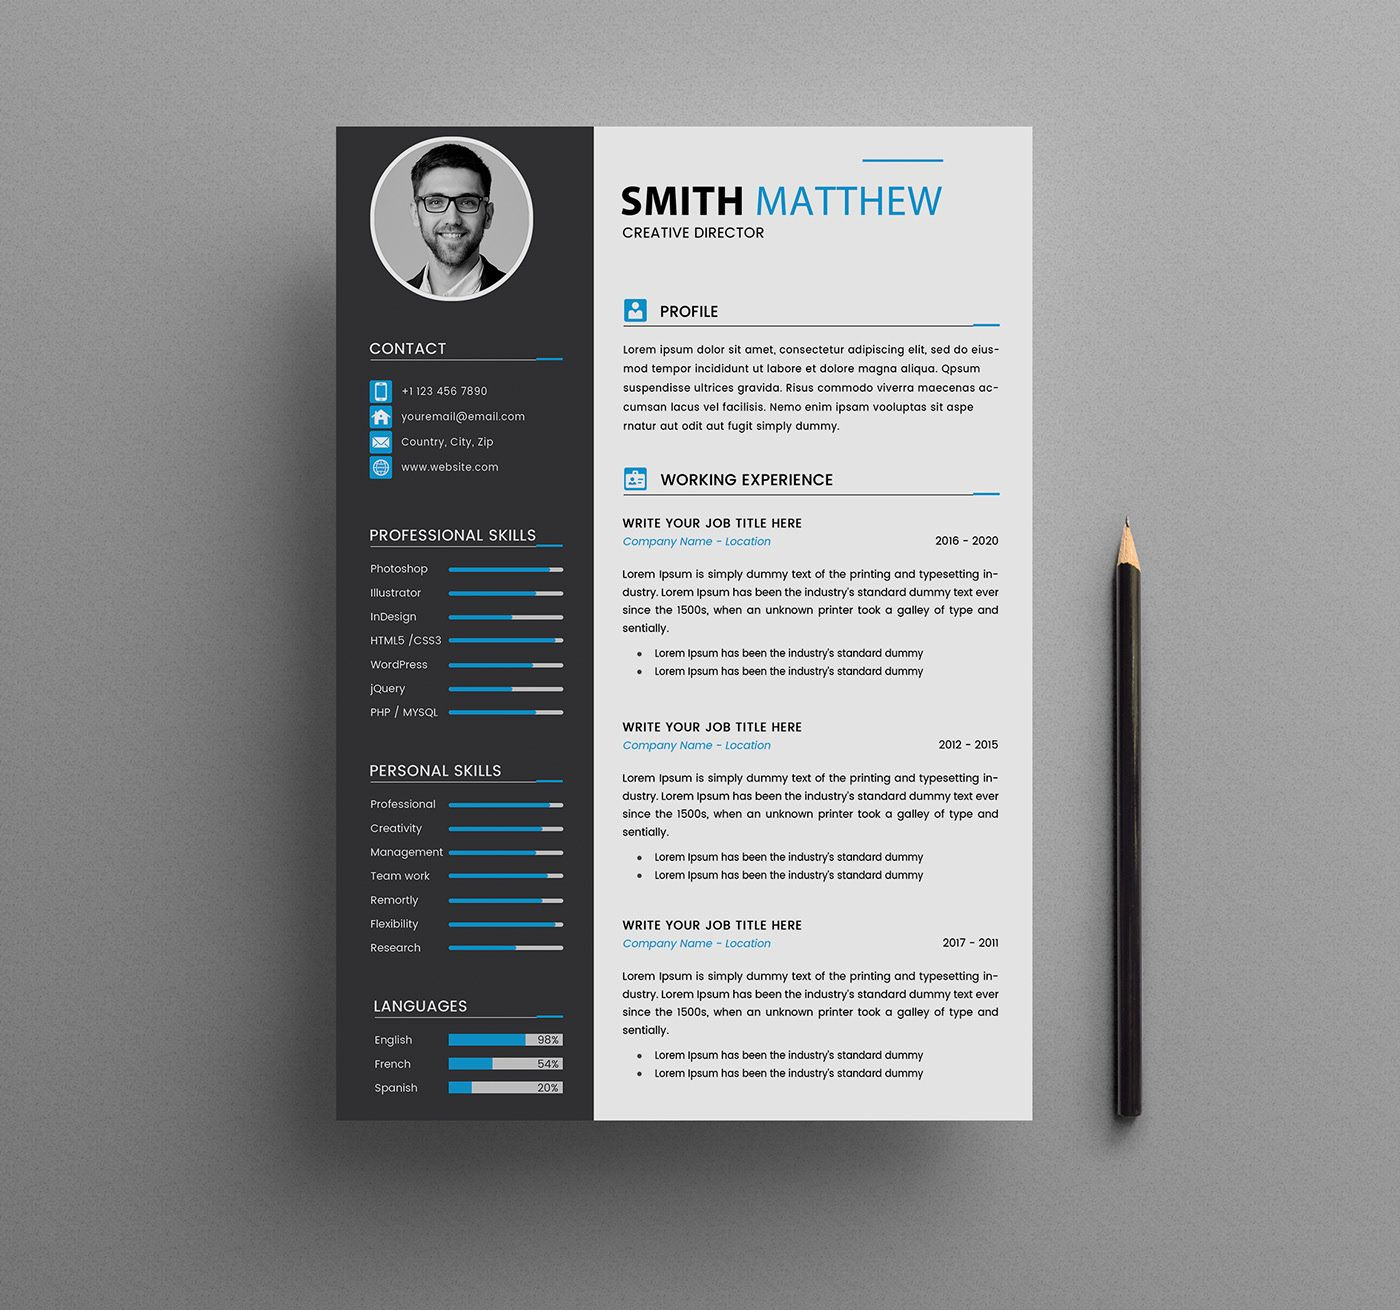 Cv Resume Templates Free Download On Behance Free Resume Template Download Cv Template Free Cv Design Template Free